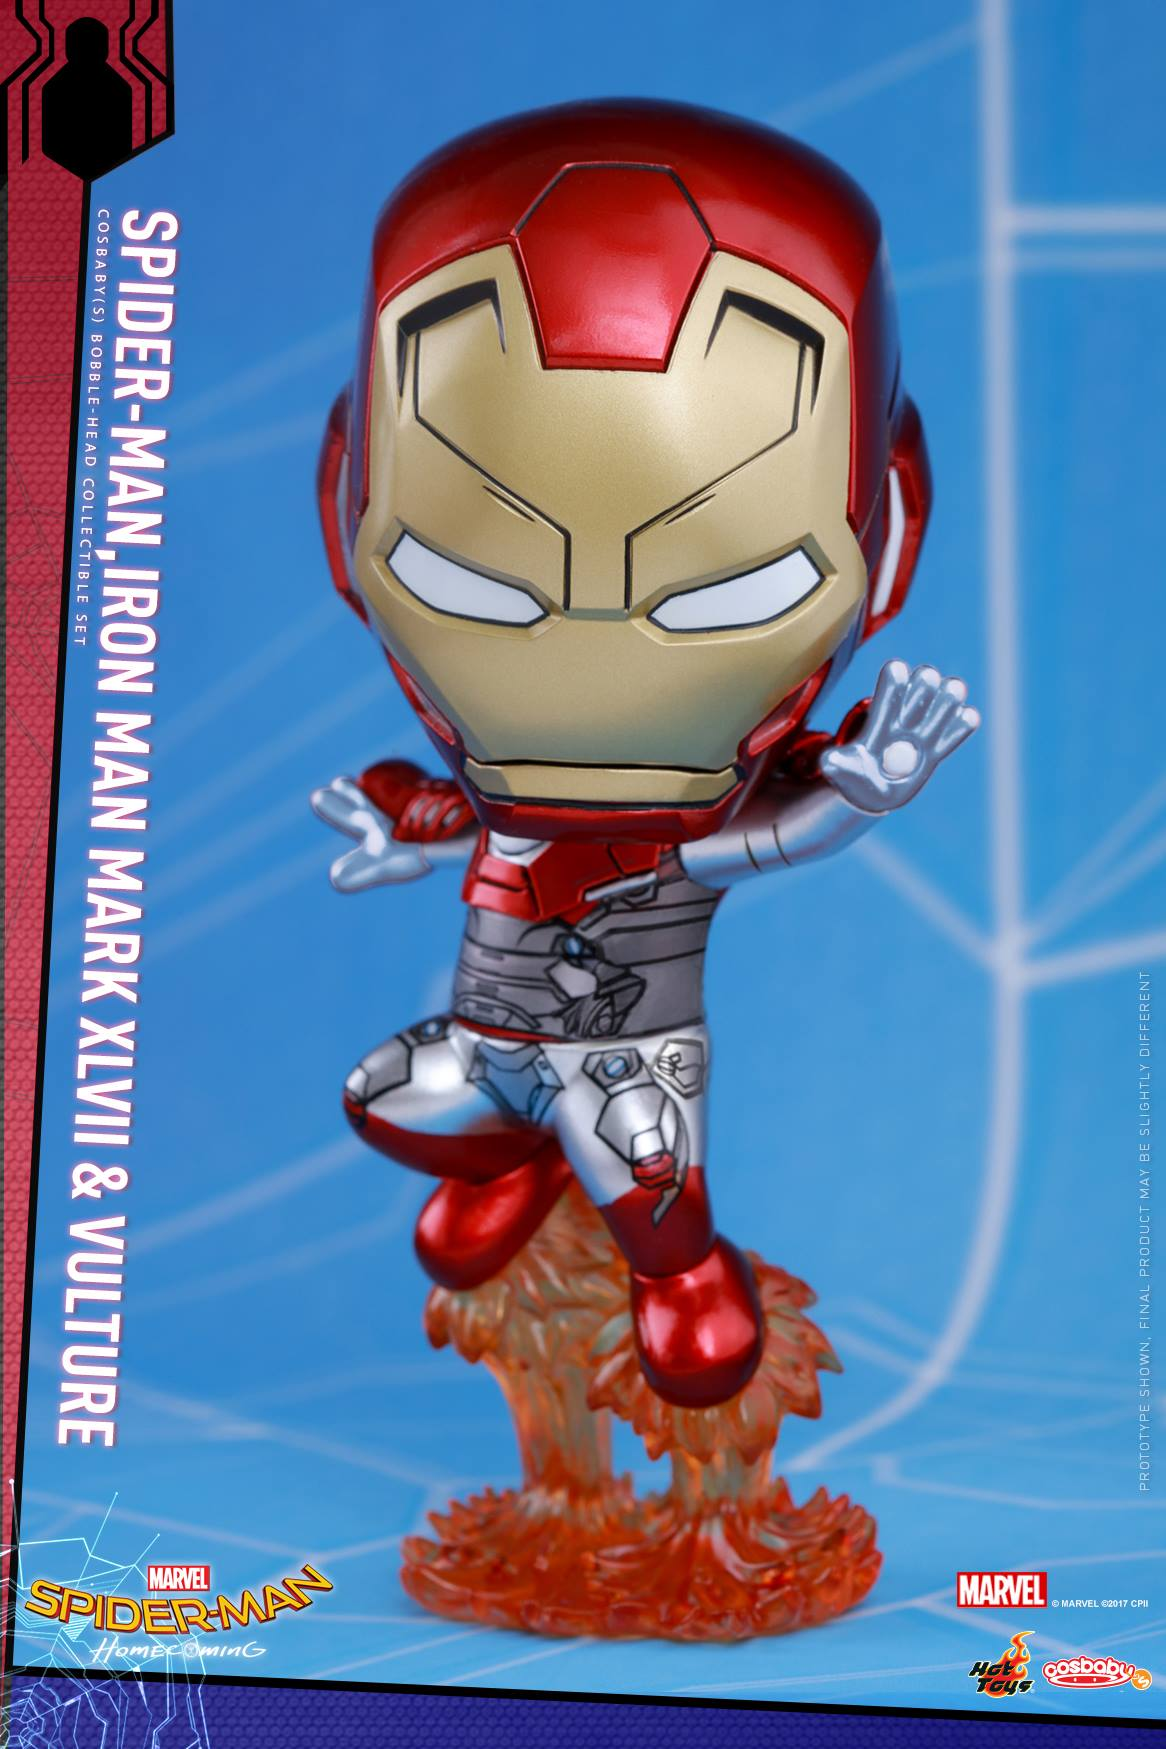 Spider Man Homecoming Cosbaby Bobble Head Figures By Hot